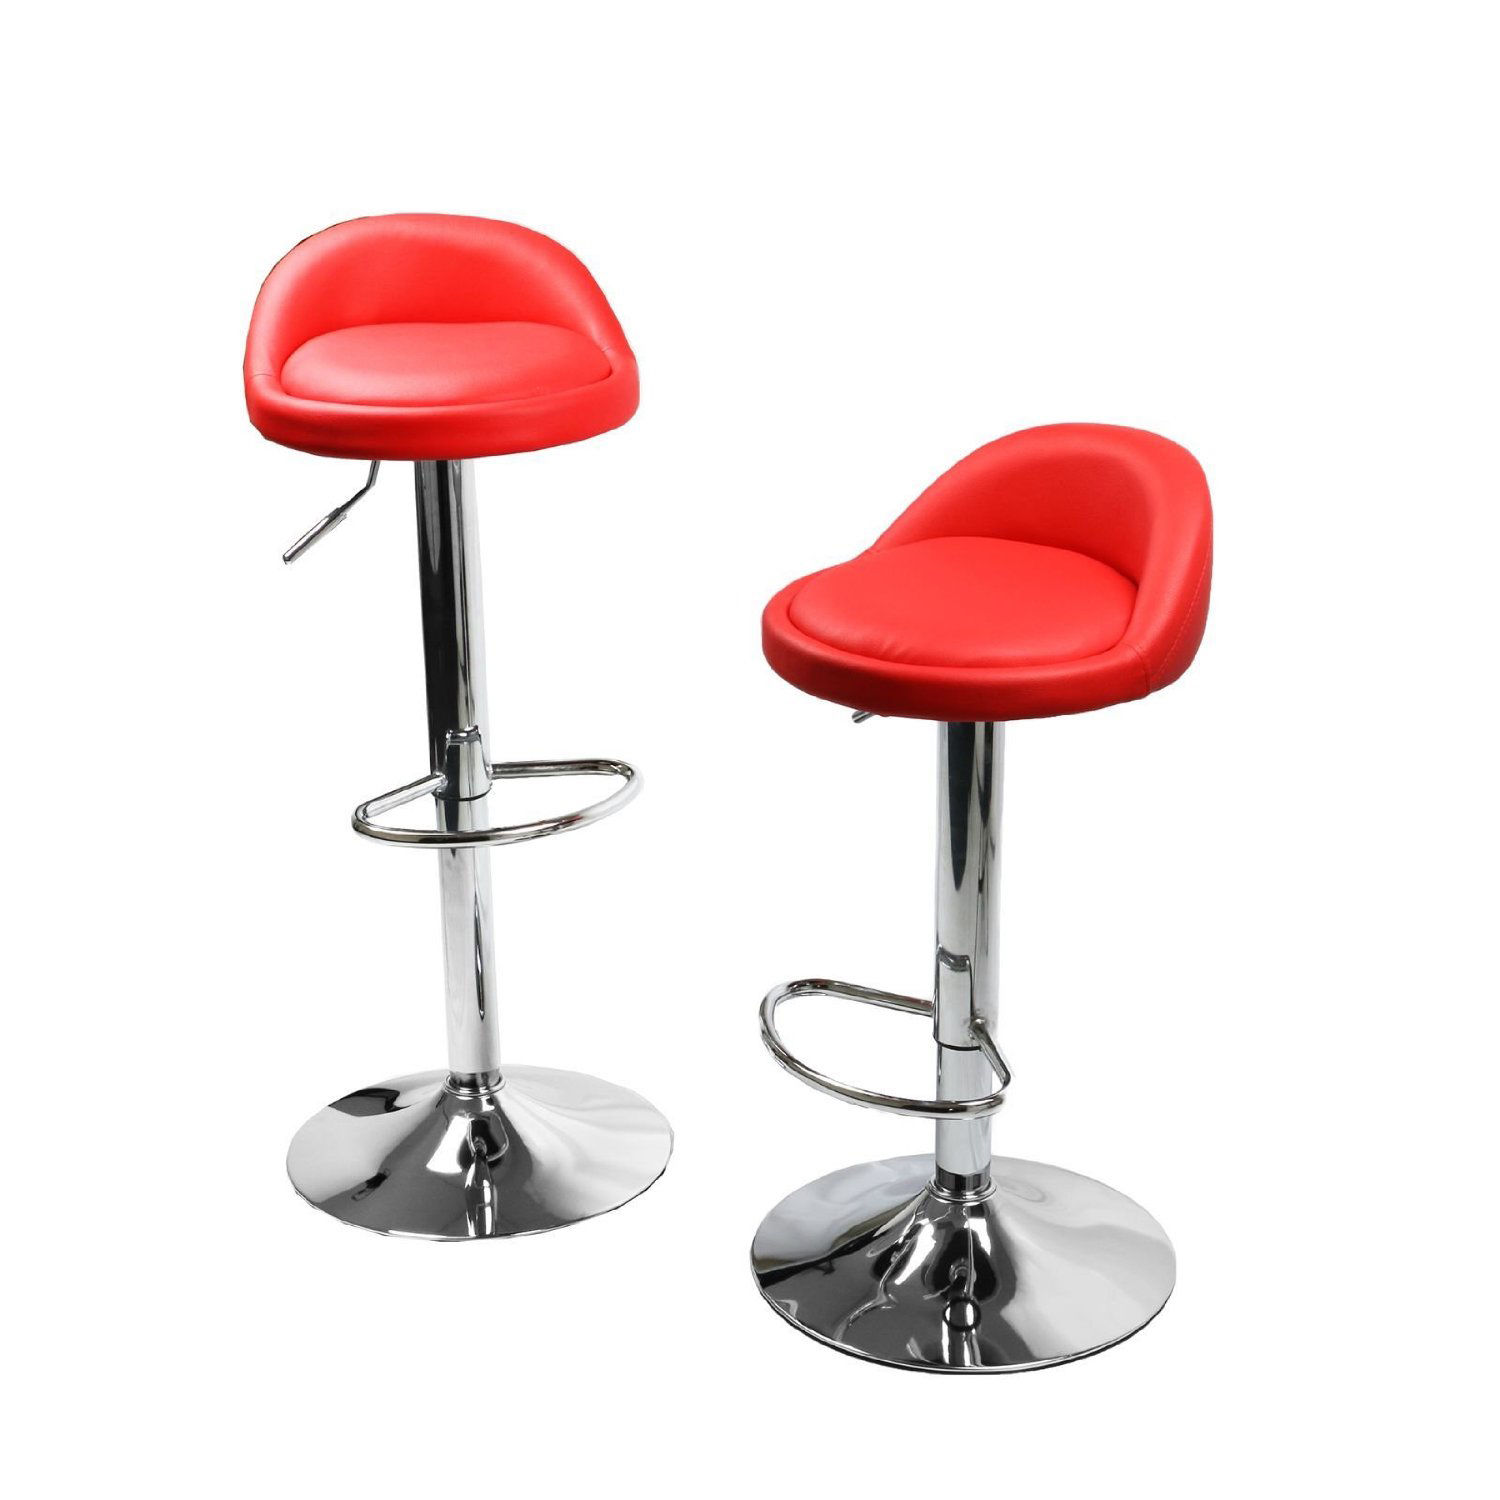 Set Of 2 Red Leather Bar Stools Swivel Dinning Counter  : 3hbar318nr4010491 from www.ebay.com size 1500 x 1500 jpeg 100kB